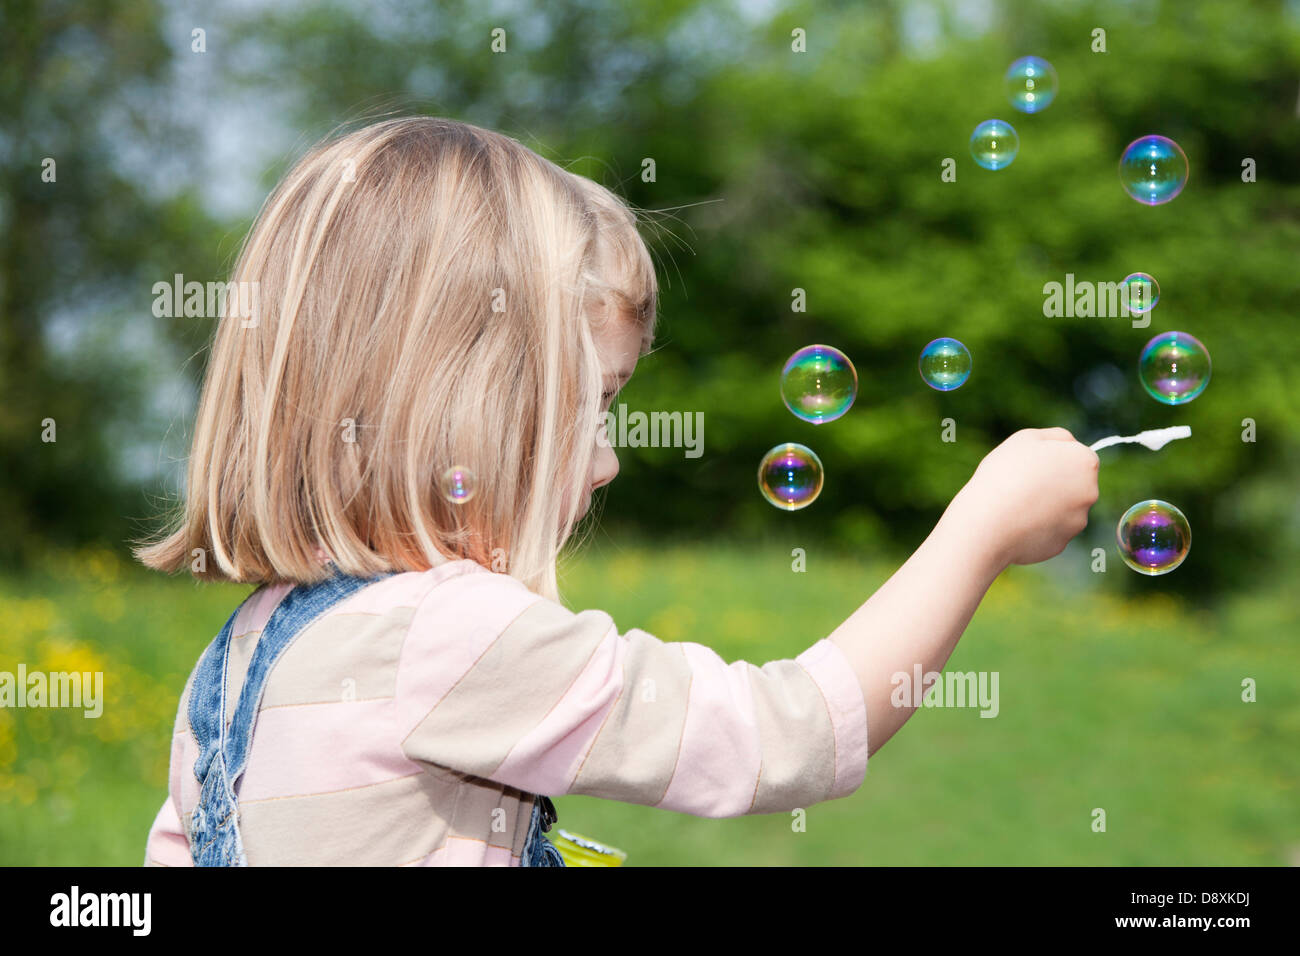 Four year-old girl balancing a soap bubbles - Stock Image